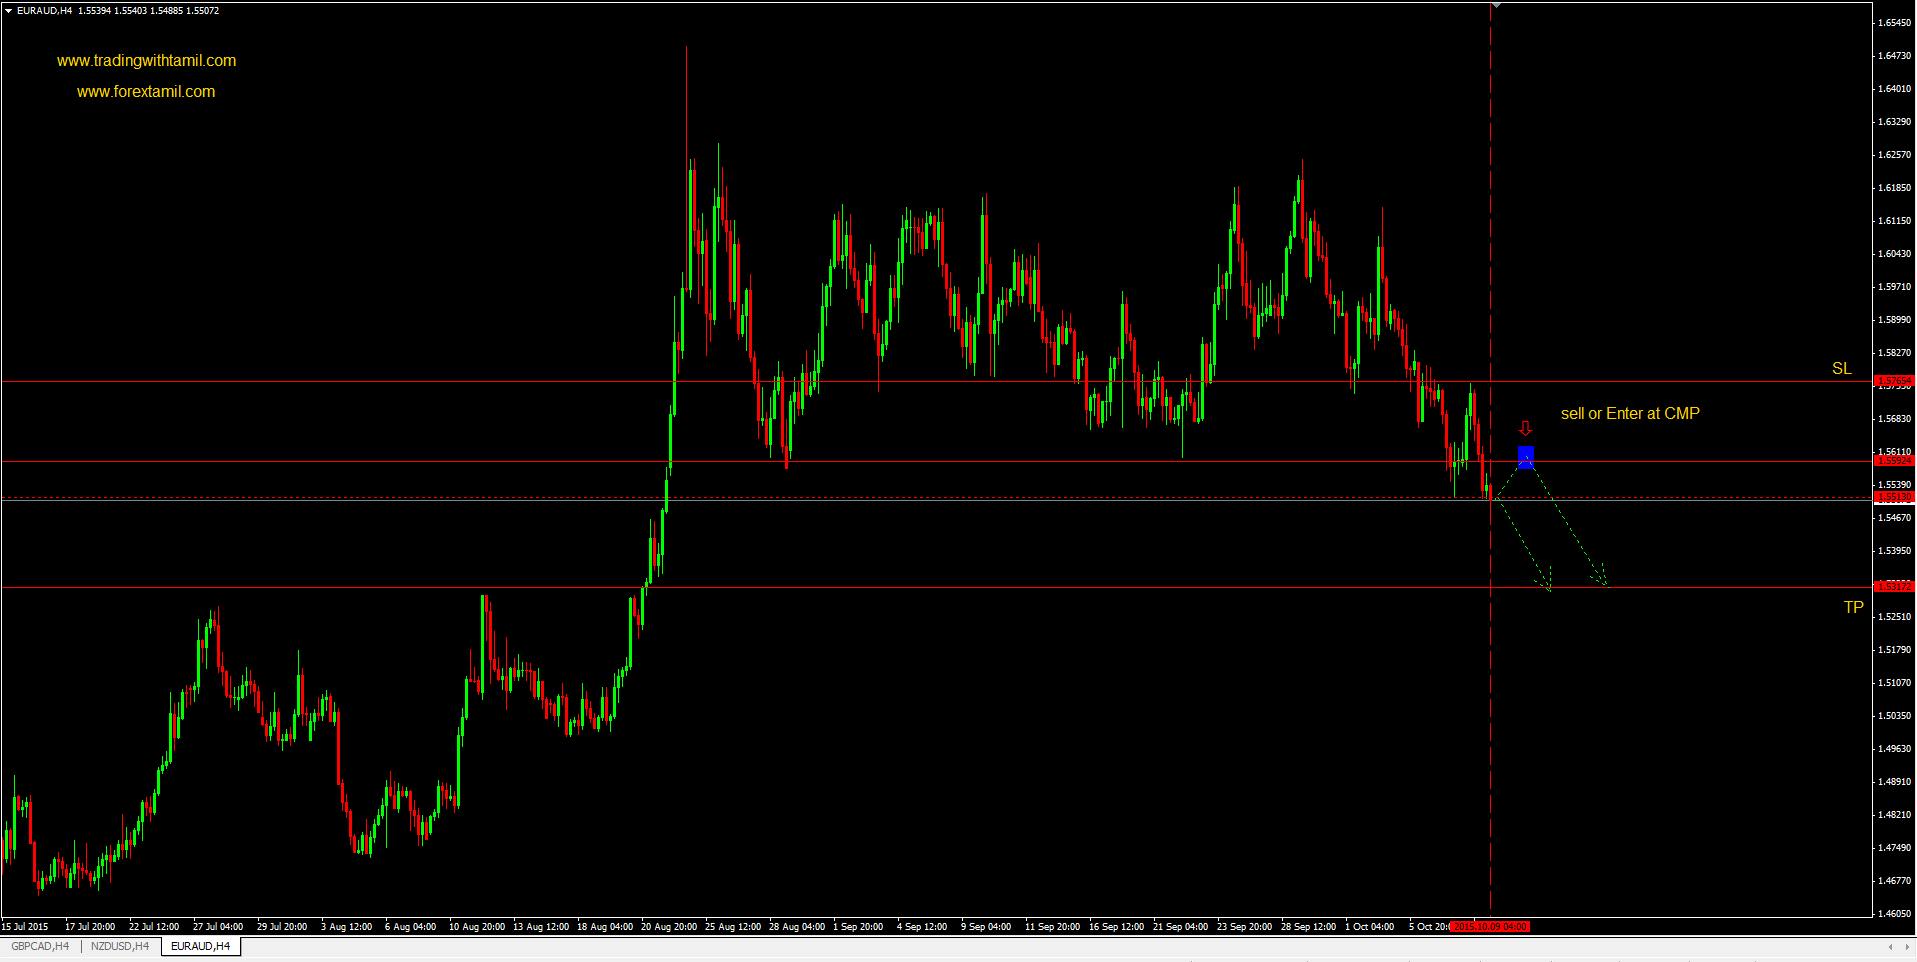 Q-FOREX LIVE CHALLENGING SIGNAL 09 Oct 2015 – SELL EUR/AUD